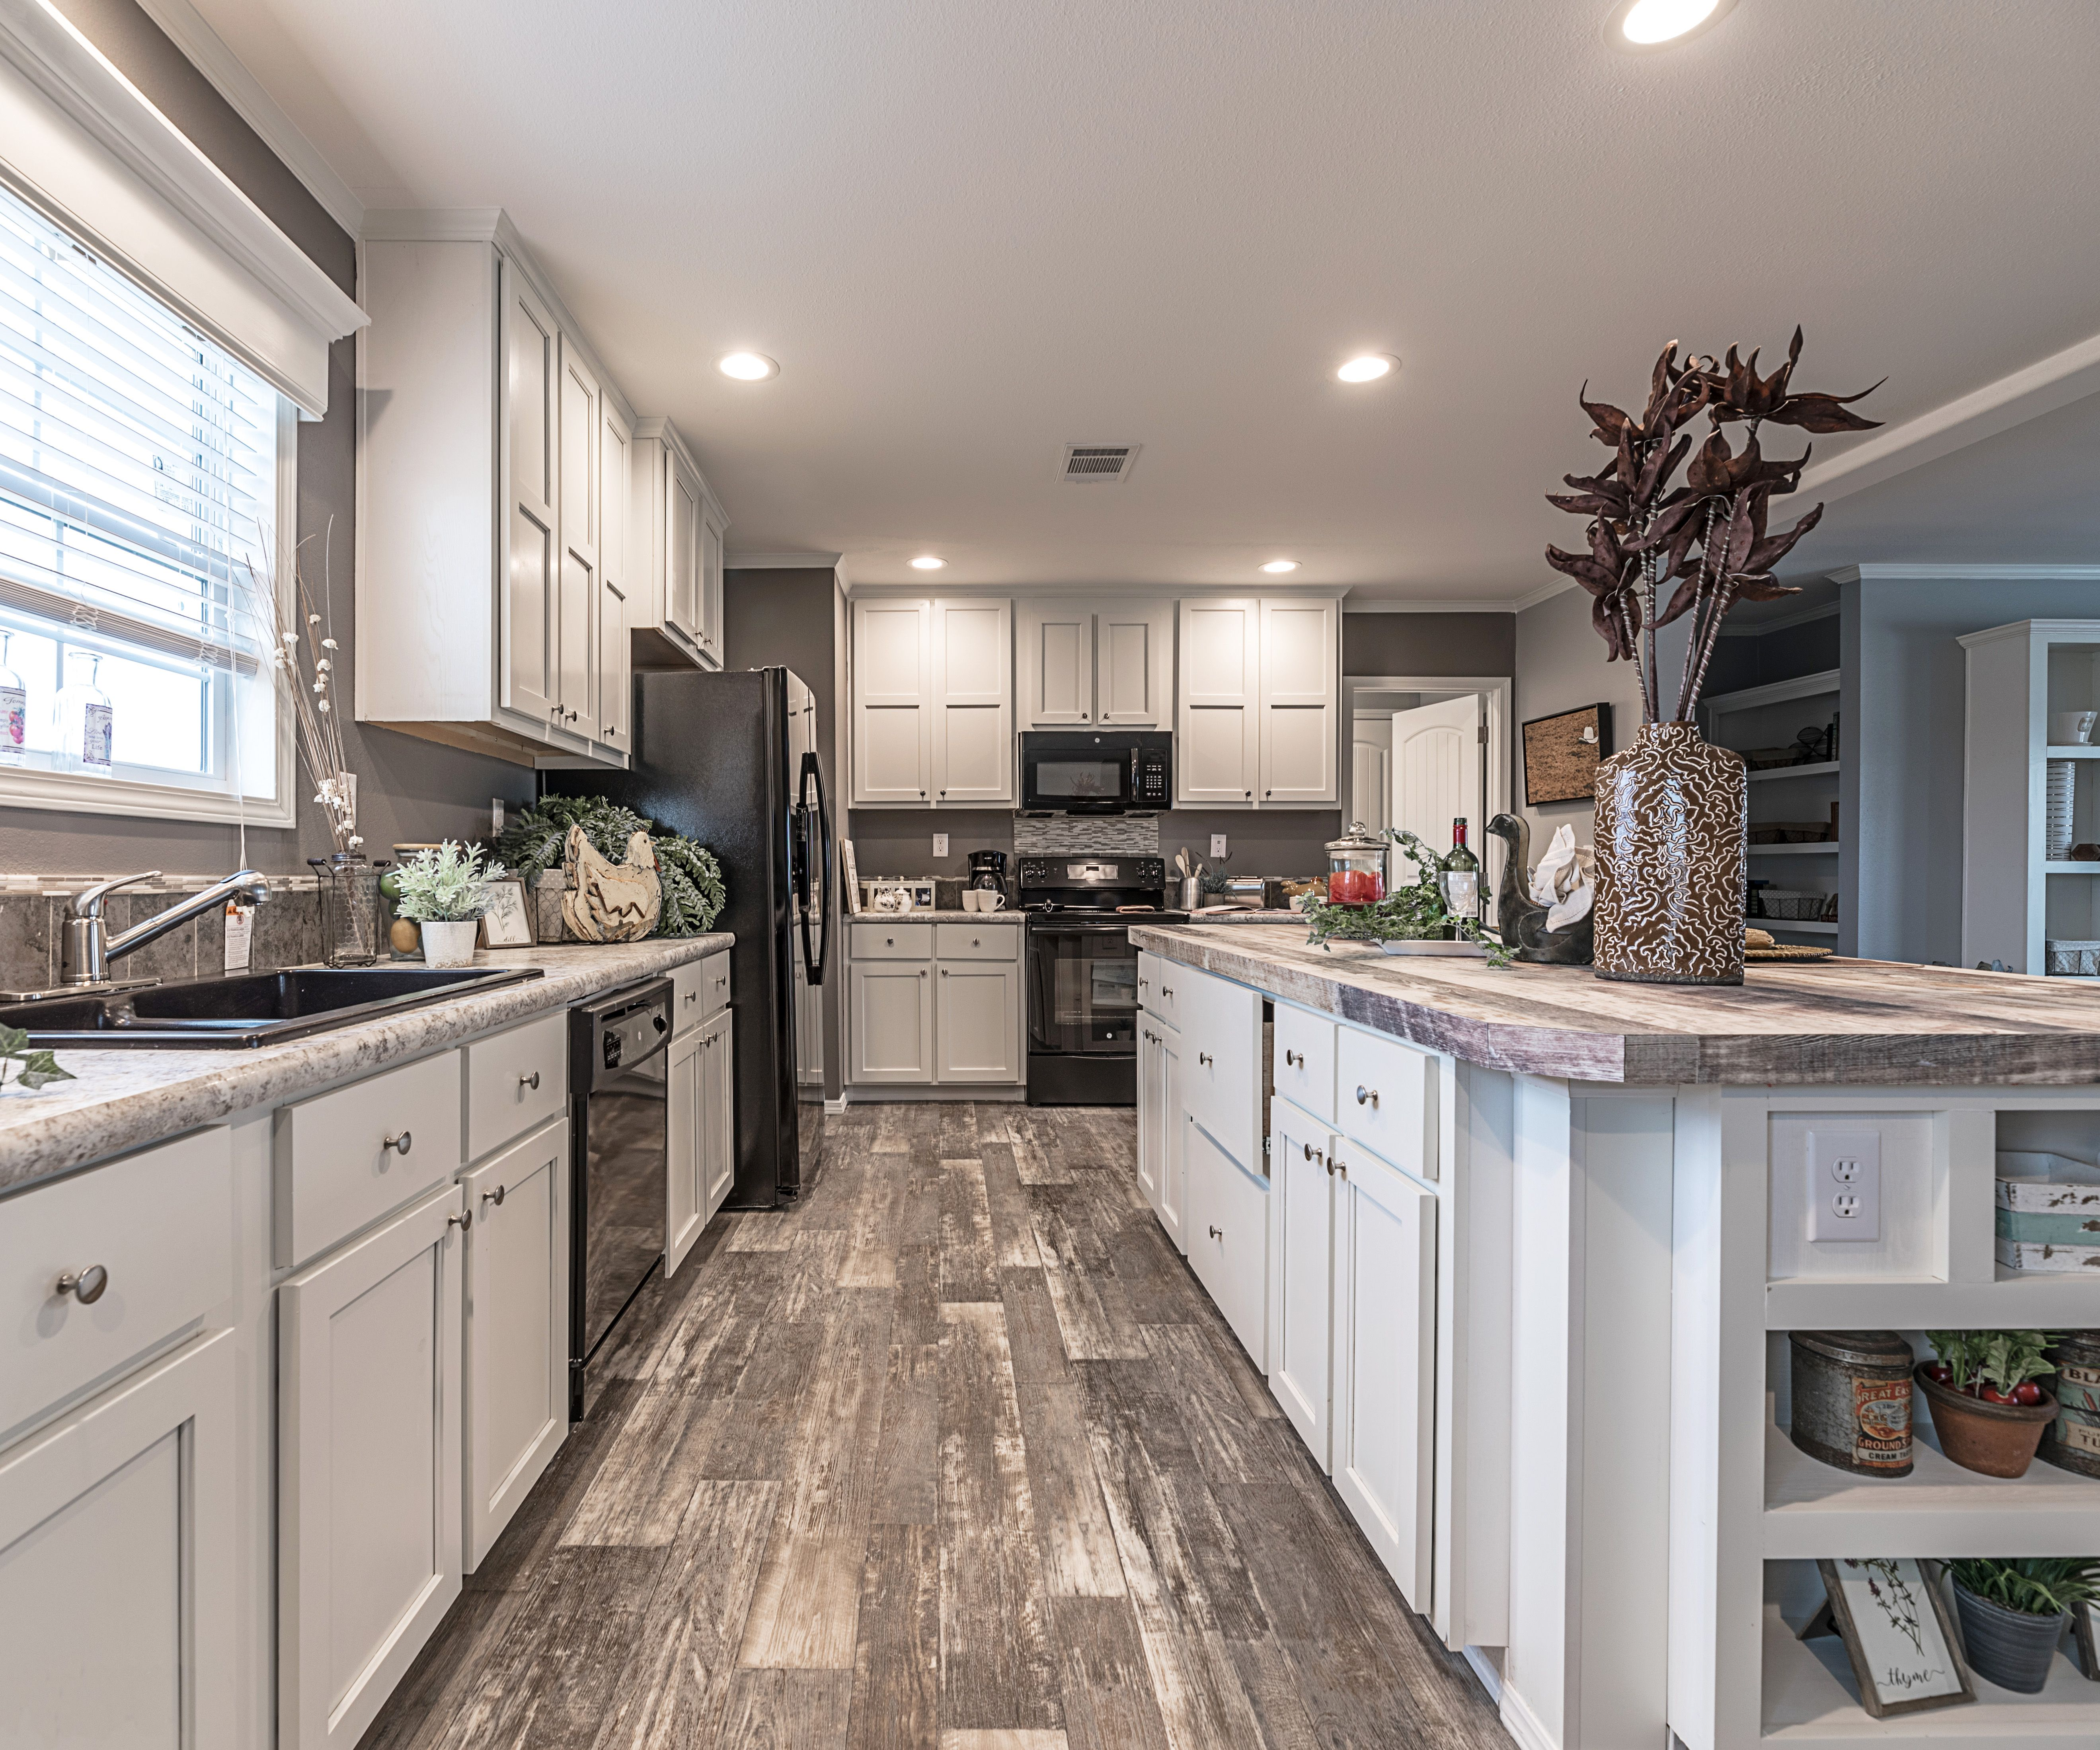 How Big A Kitchen Do You Need Floor Plan Model Ph 1 4 Bedrooms 2 Baths 1 800 Sq Ft Outdoor Kitchen Decor Kitchen Decor Outdoor Kitchen